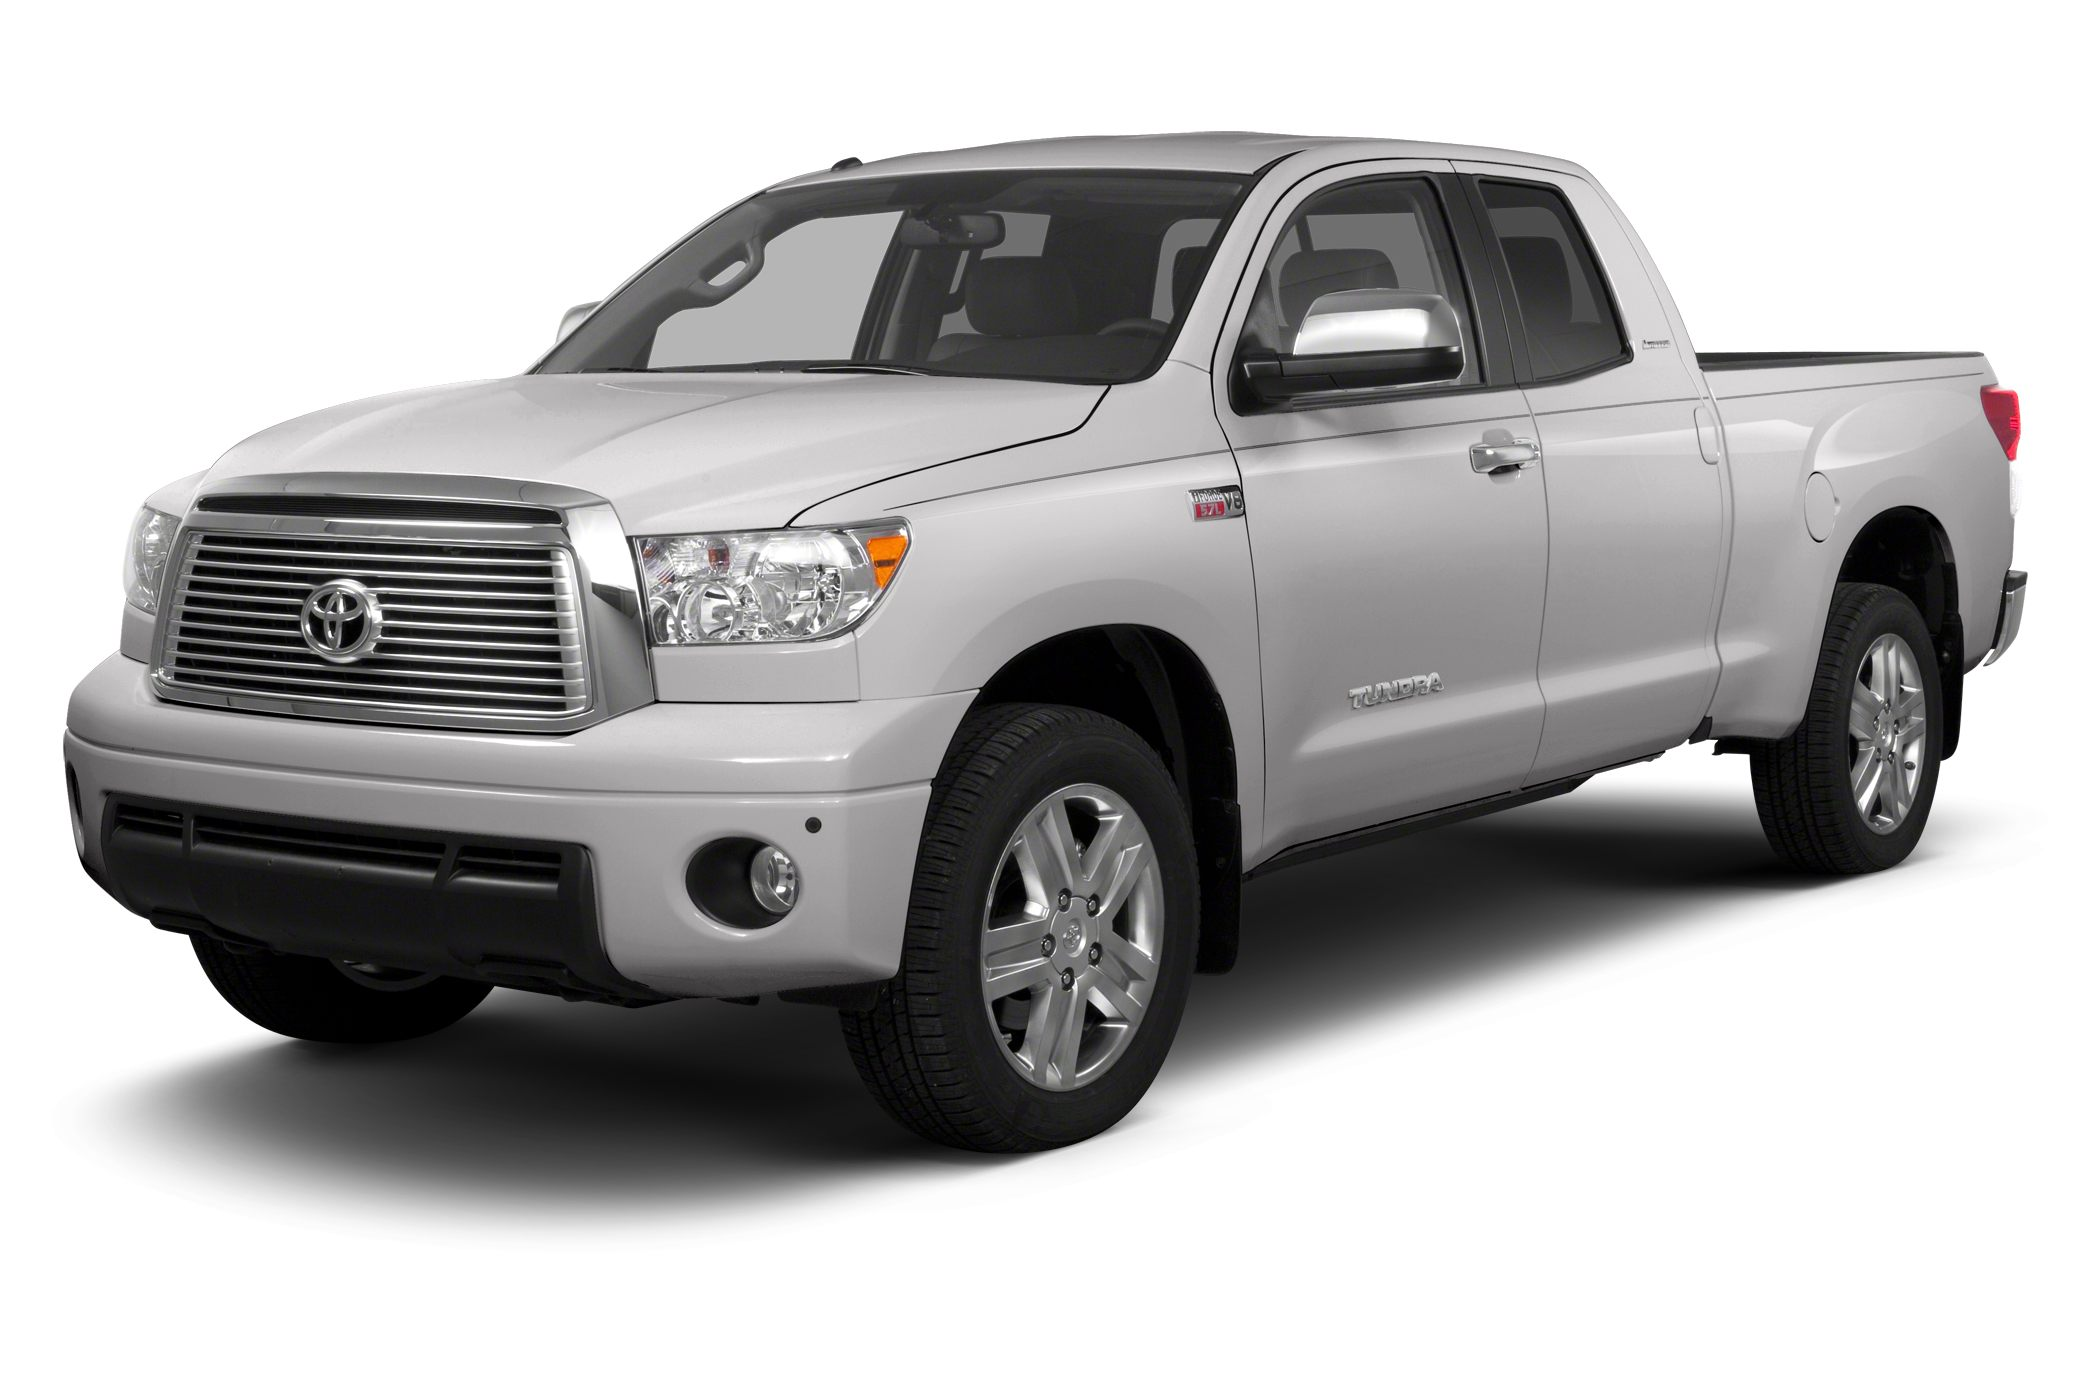 2013 Toyota Tundra Limited Crew Cab Pickup for sale in Sacramento for $39,998 with 29,766 miles.